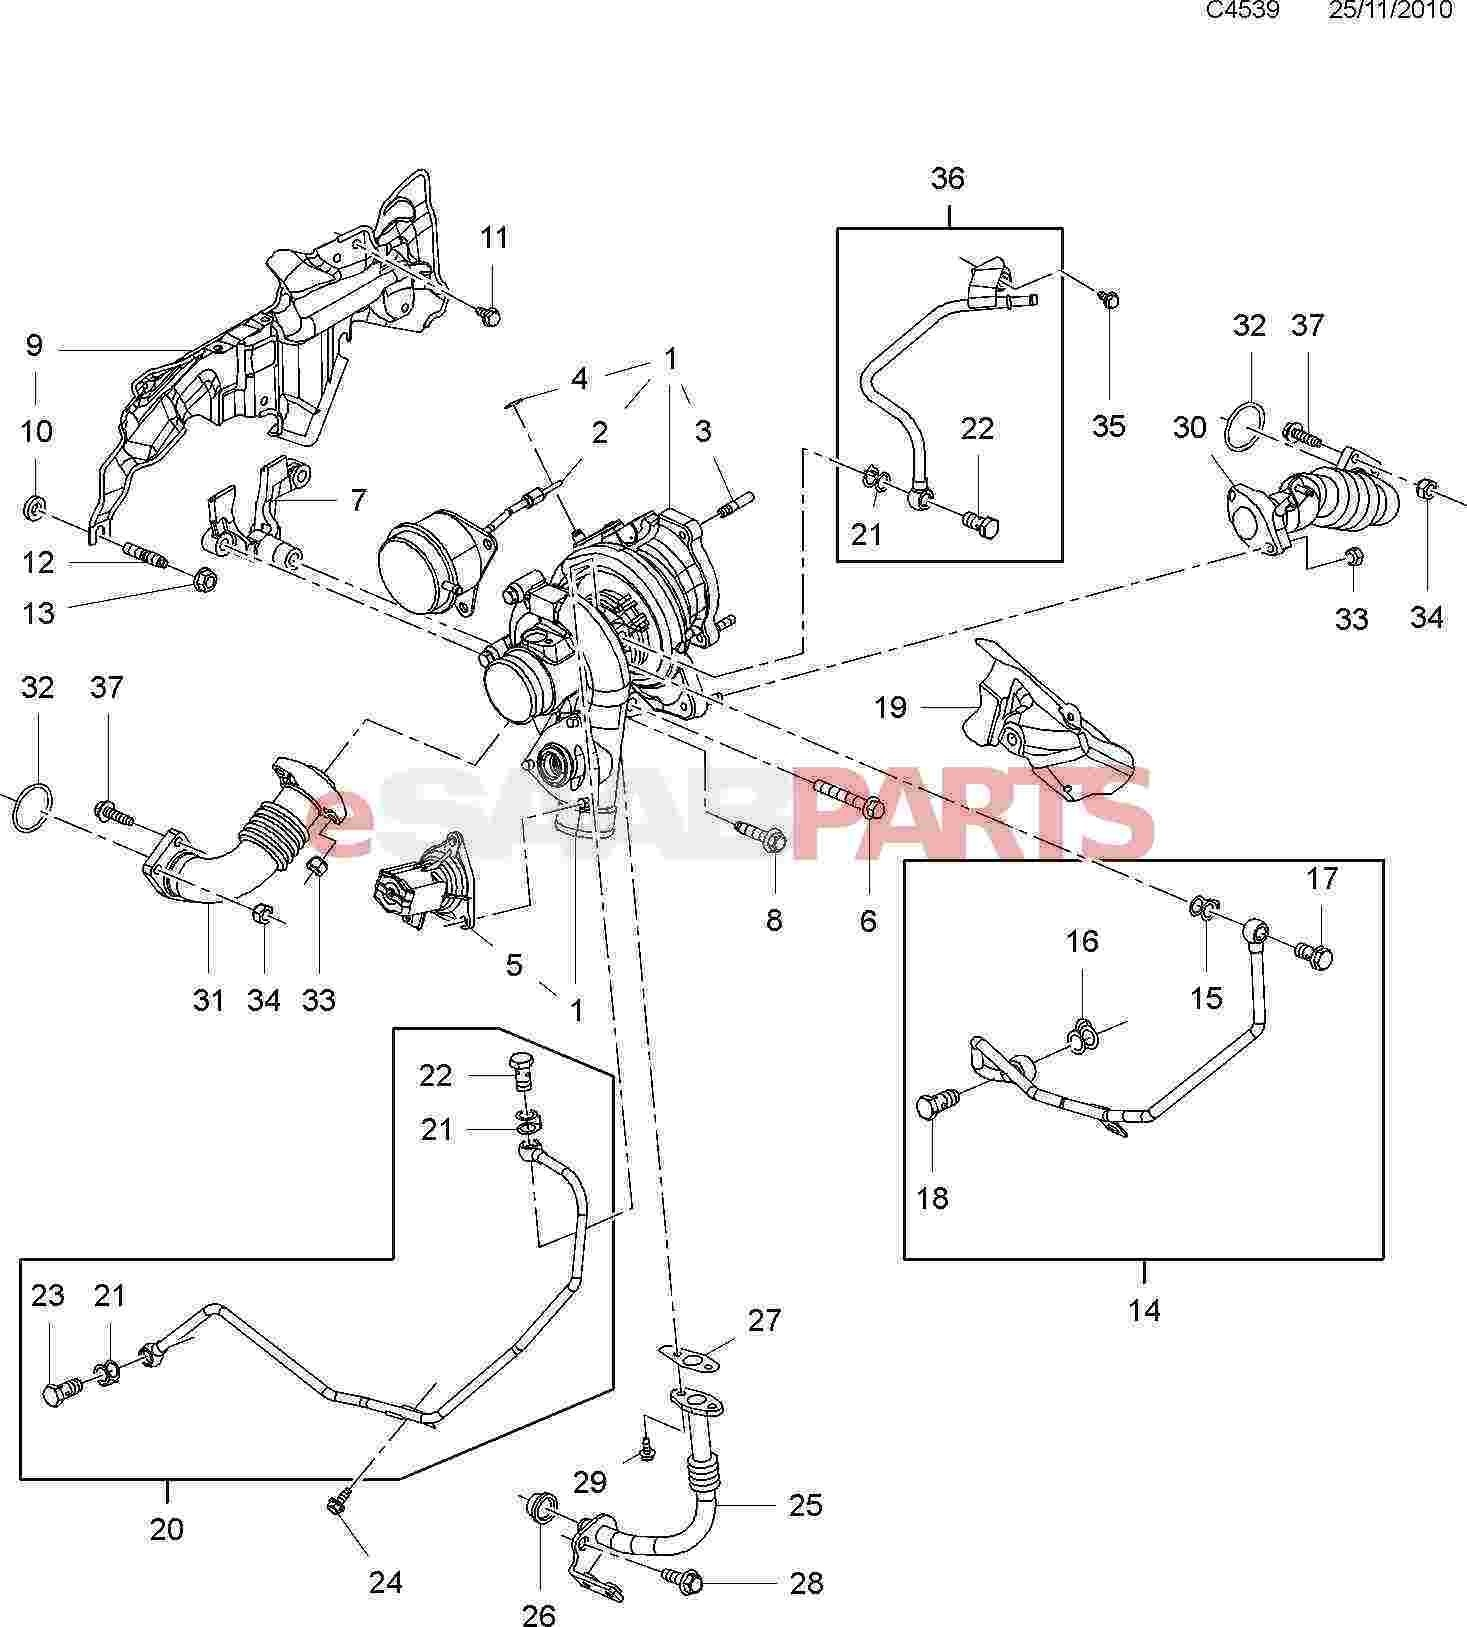 Ford 6 7 Sel Engine Serpentine Belt Diagram also 1995 Miata Wiring Diagram additionally Mazda Tribute 2001 Engine Diagram moreover 9347MAZ03 Intake Manifold as well Mazda Rx 8 Body Parts Diagrams. on mazda protege 5 wiring diagram